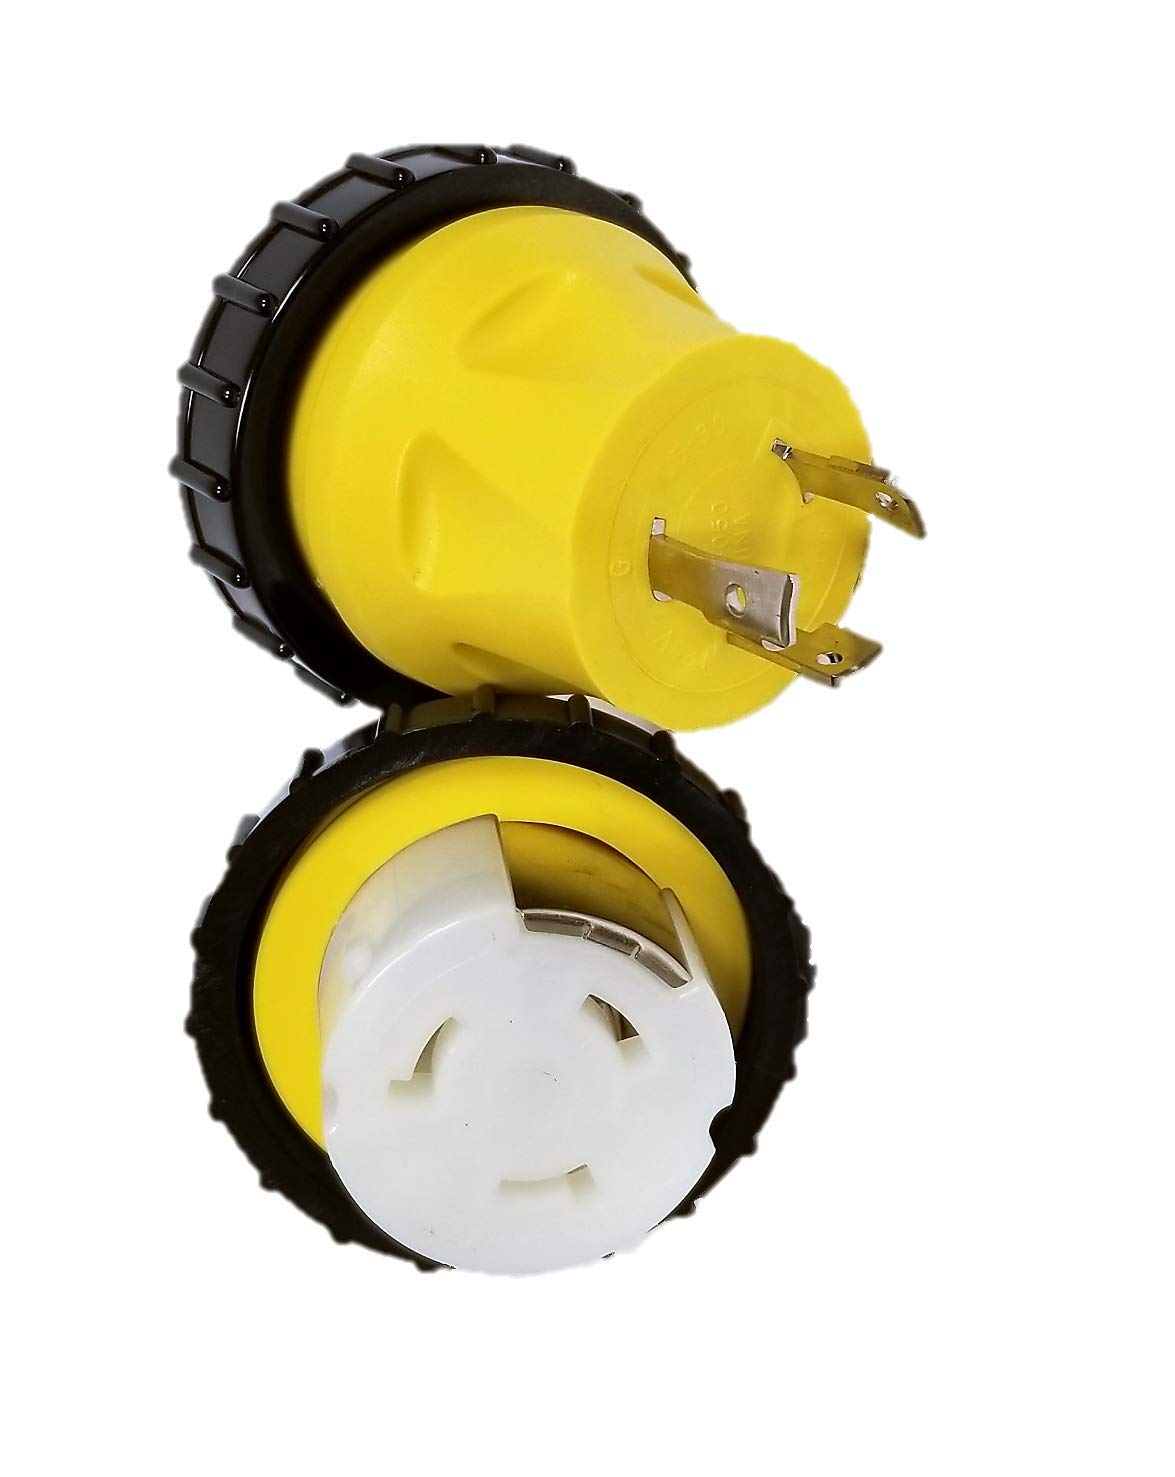 Marine Shore Power Locking 30 amp Male to Locking 50 amp Female with Seal Ring (14963) by High Tide marine Power Cords